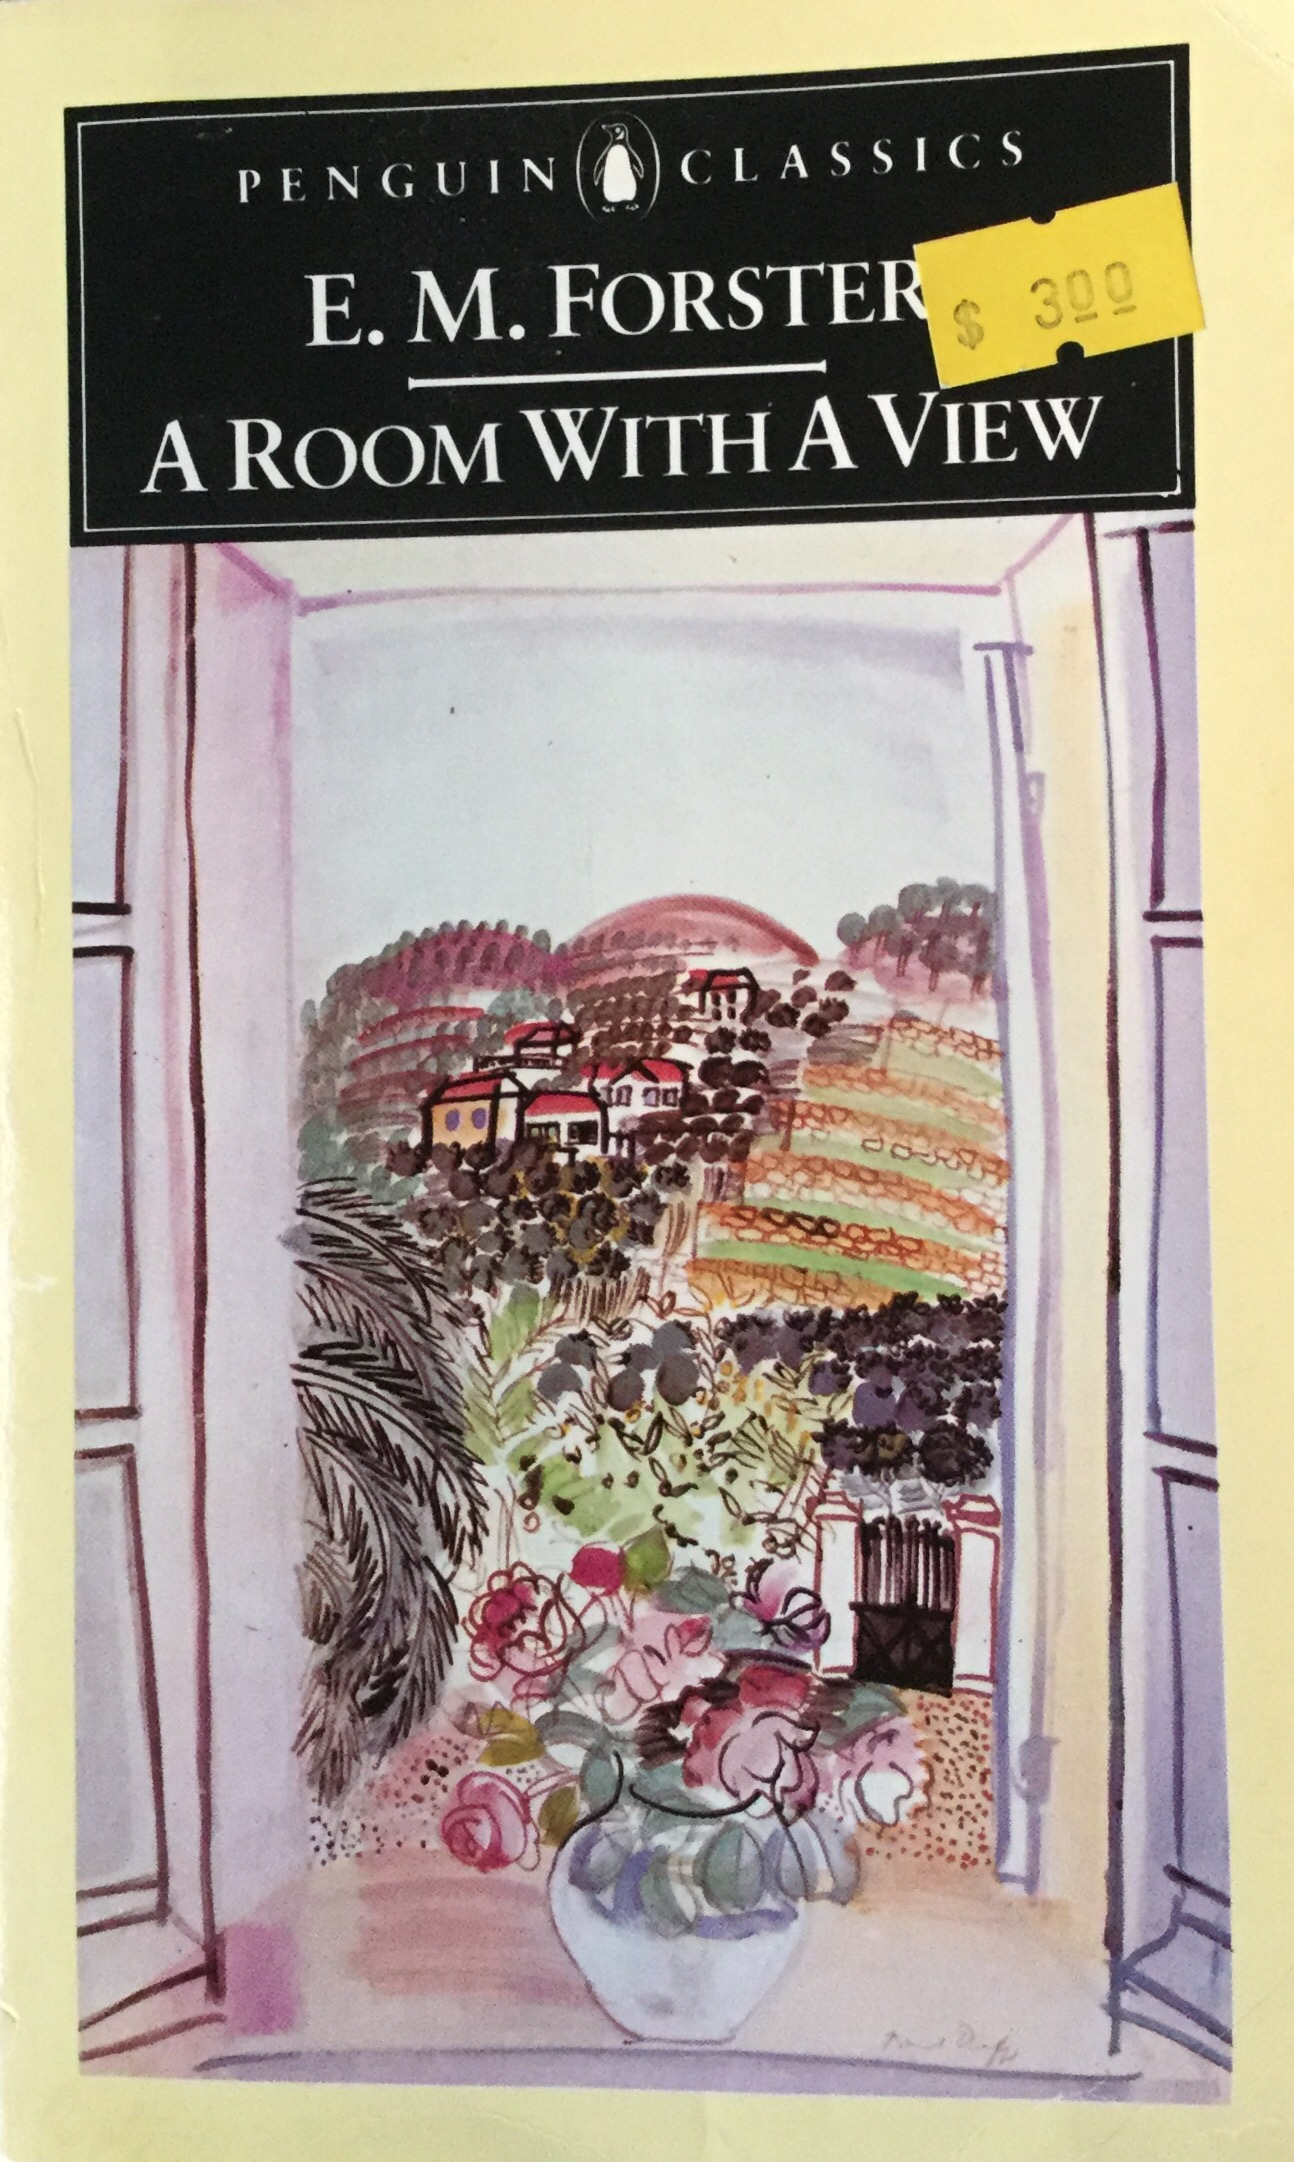 a literary analysis of room with a view by e m forster Analysis: emforster:  [ language and literature] 3,522 views  helena bonham carter kisses and tells about a room with a view - duration:.